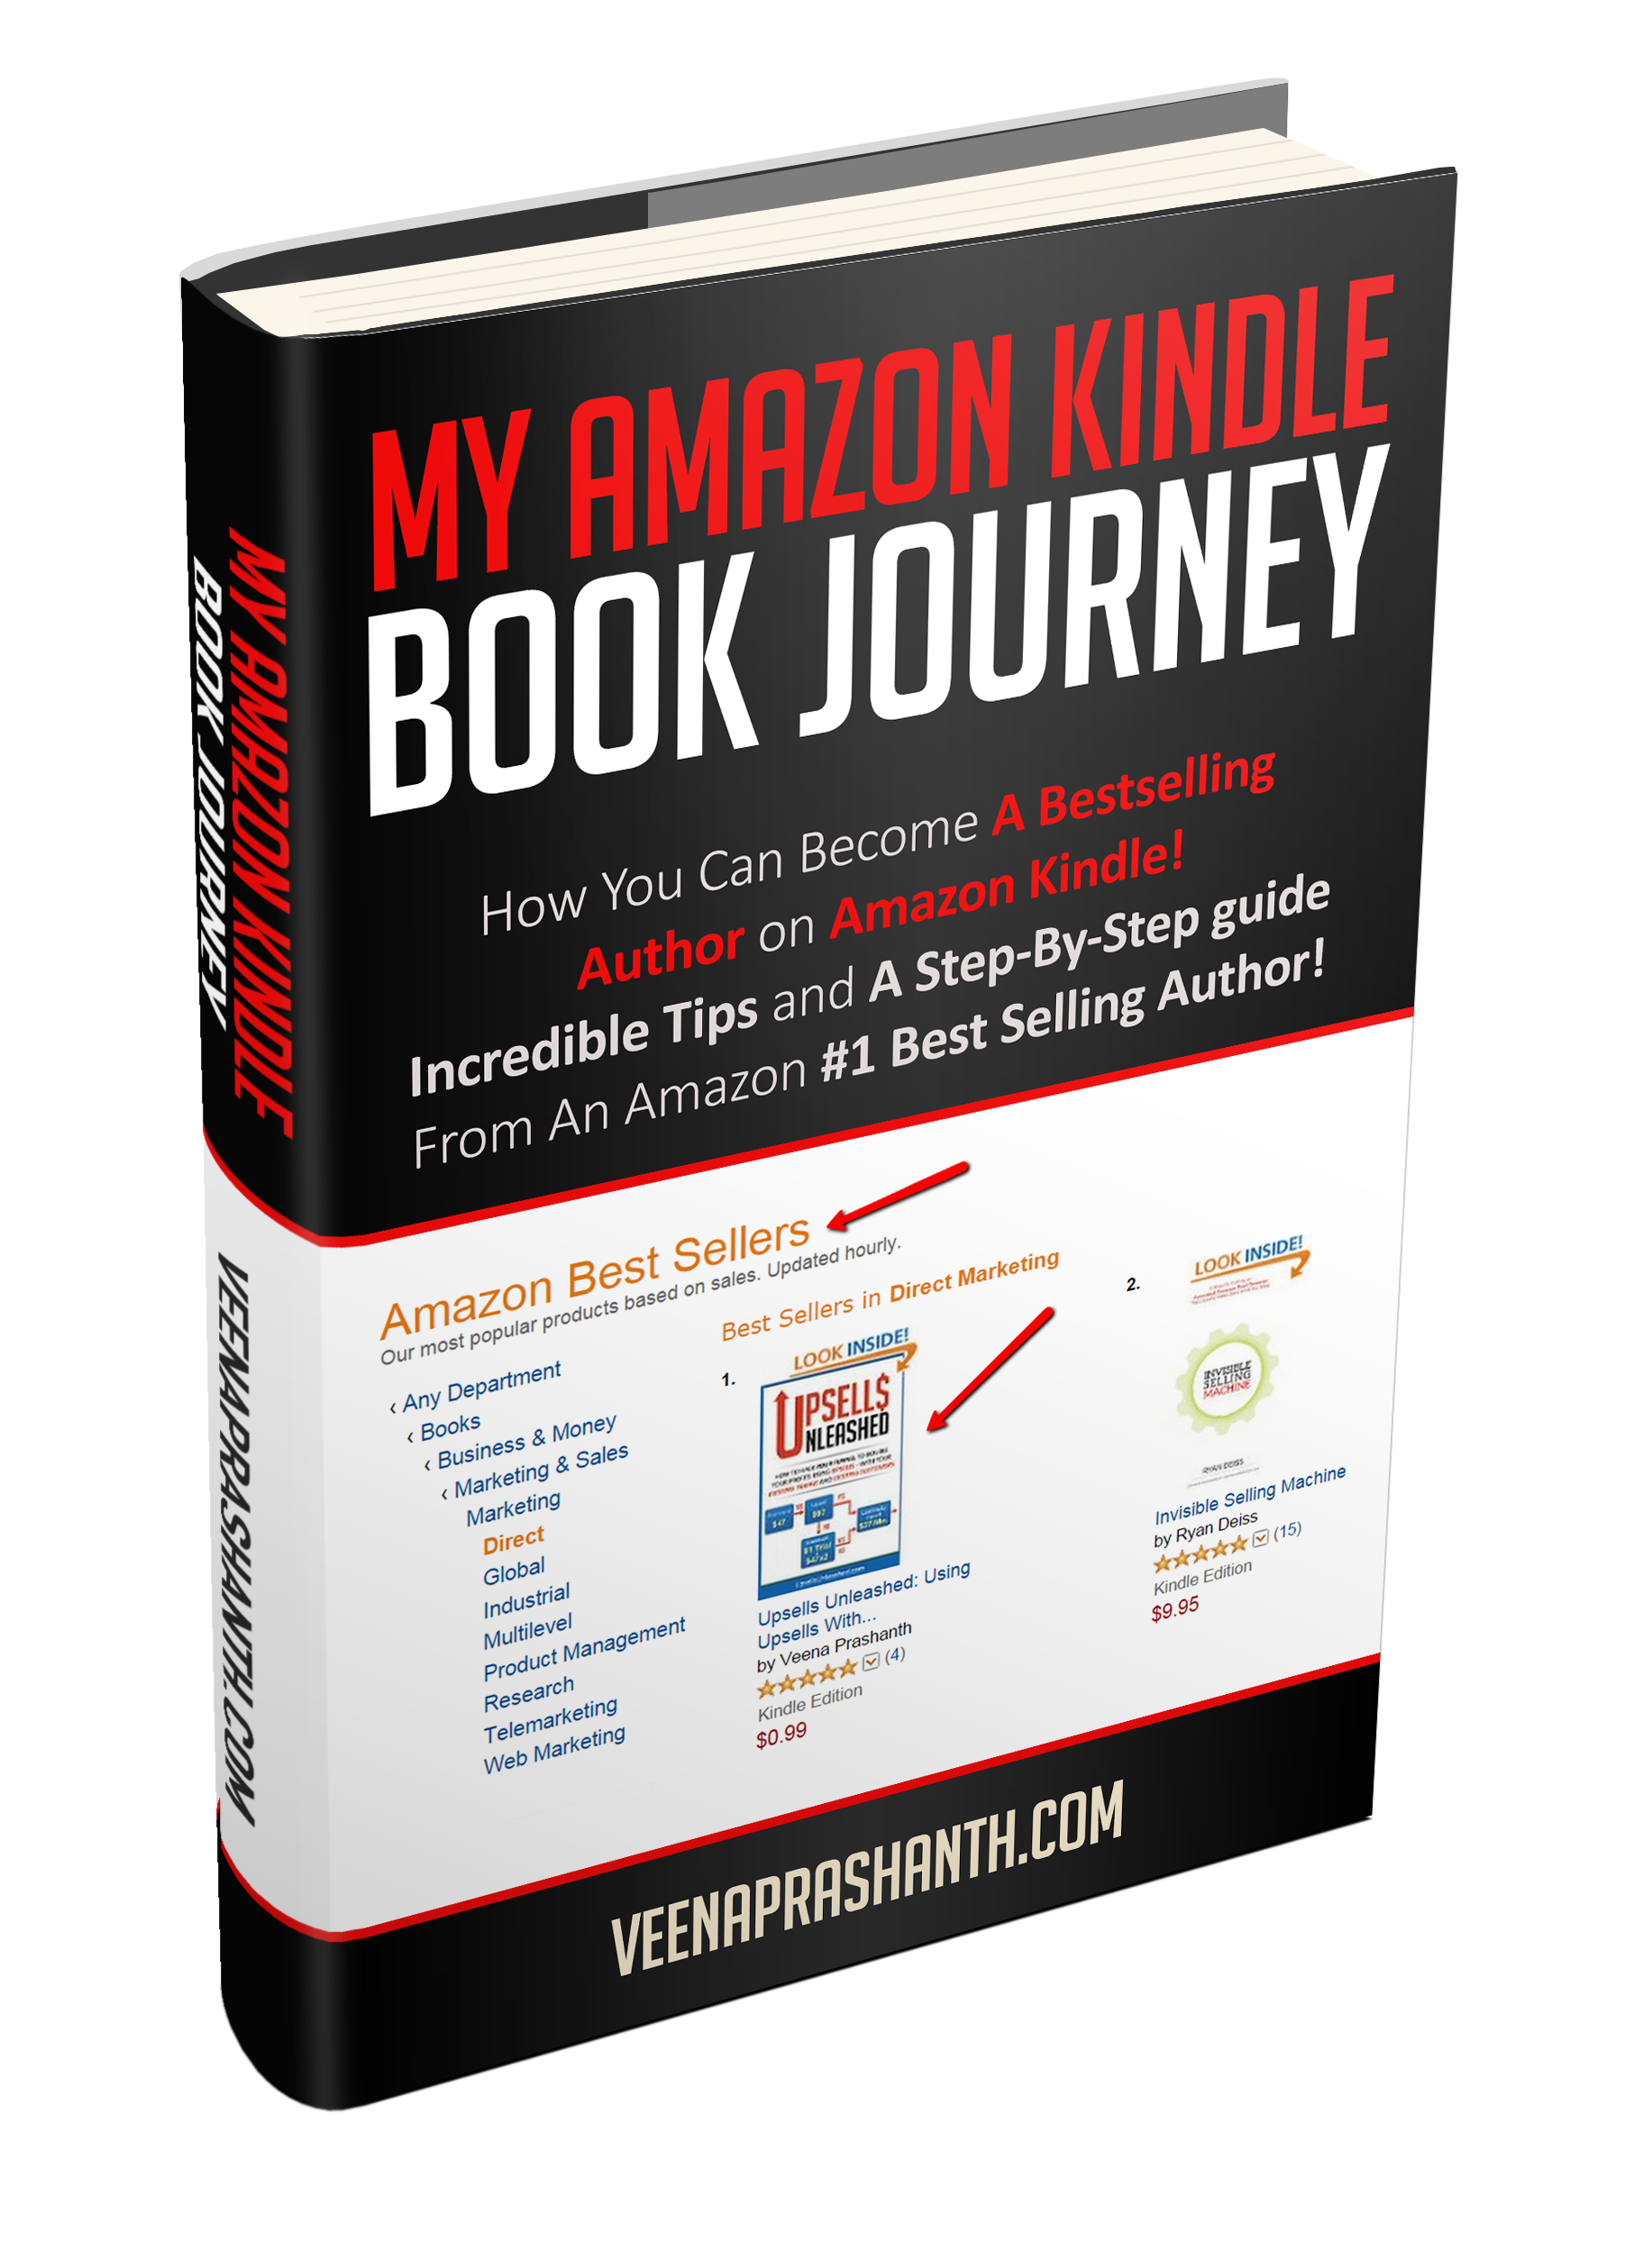 My amazon kindle book journey veenaprashanth i am giving away the complete blueprint to book launch success along with great marketing malvernweather Gallery